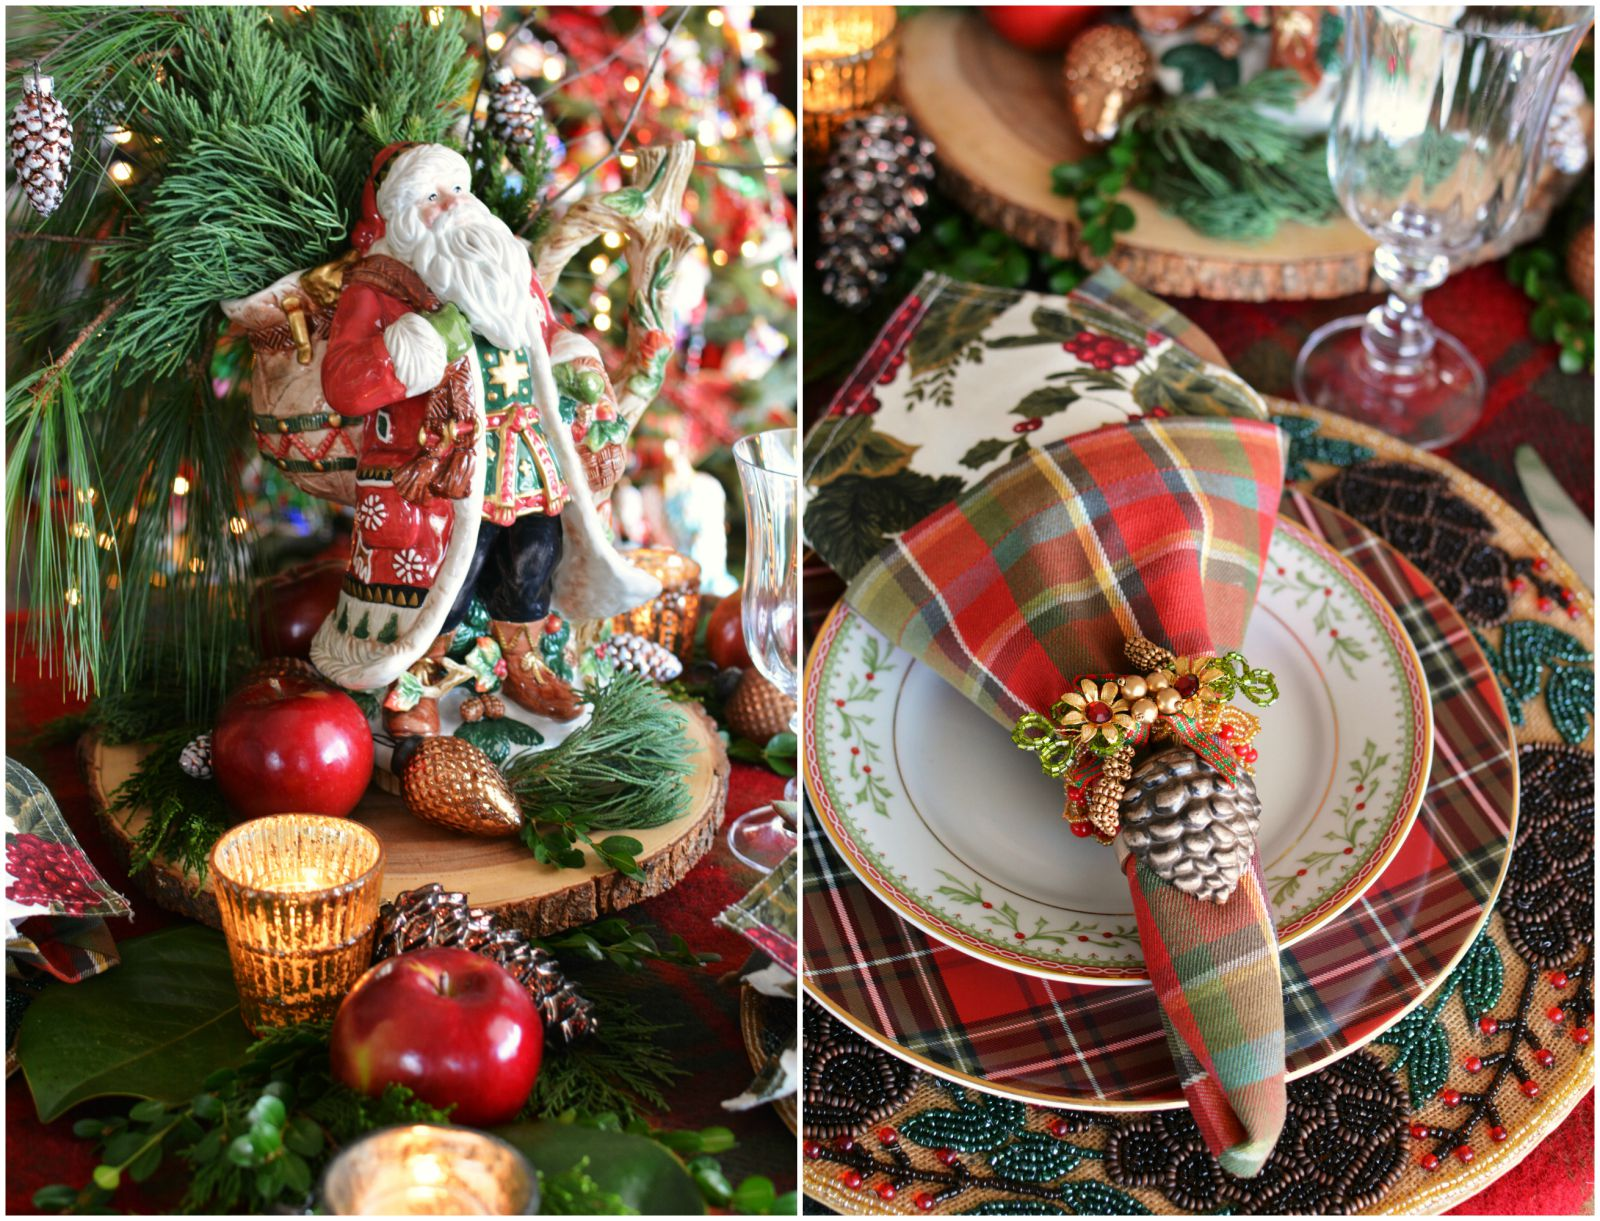 At the Table: Tartan and Fitz and Floyd Christmas Lodge by the Tree